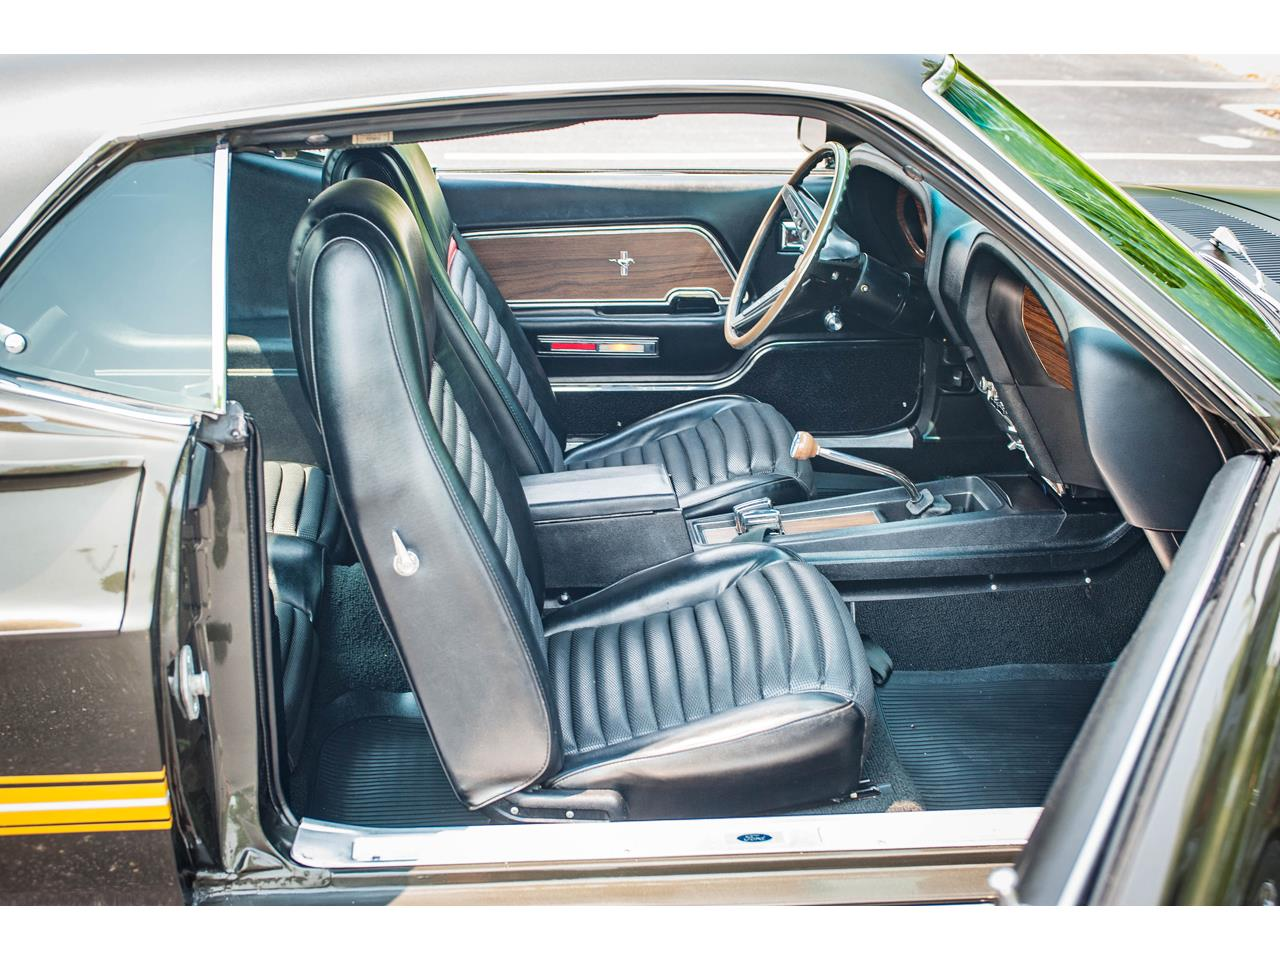 Large Picture of '69 Ford Mustang - $97,500.00 Offered by Gateway Classic Cars - St. Louis - QBA2